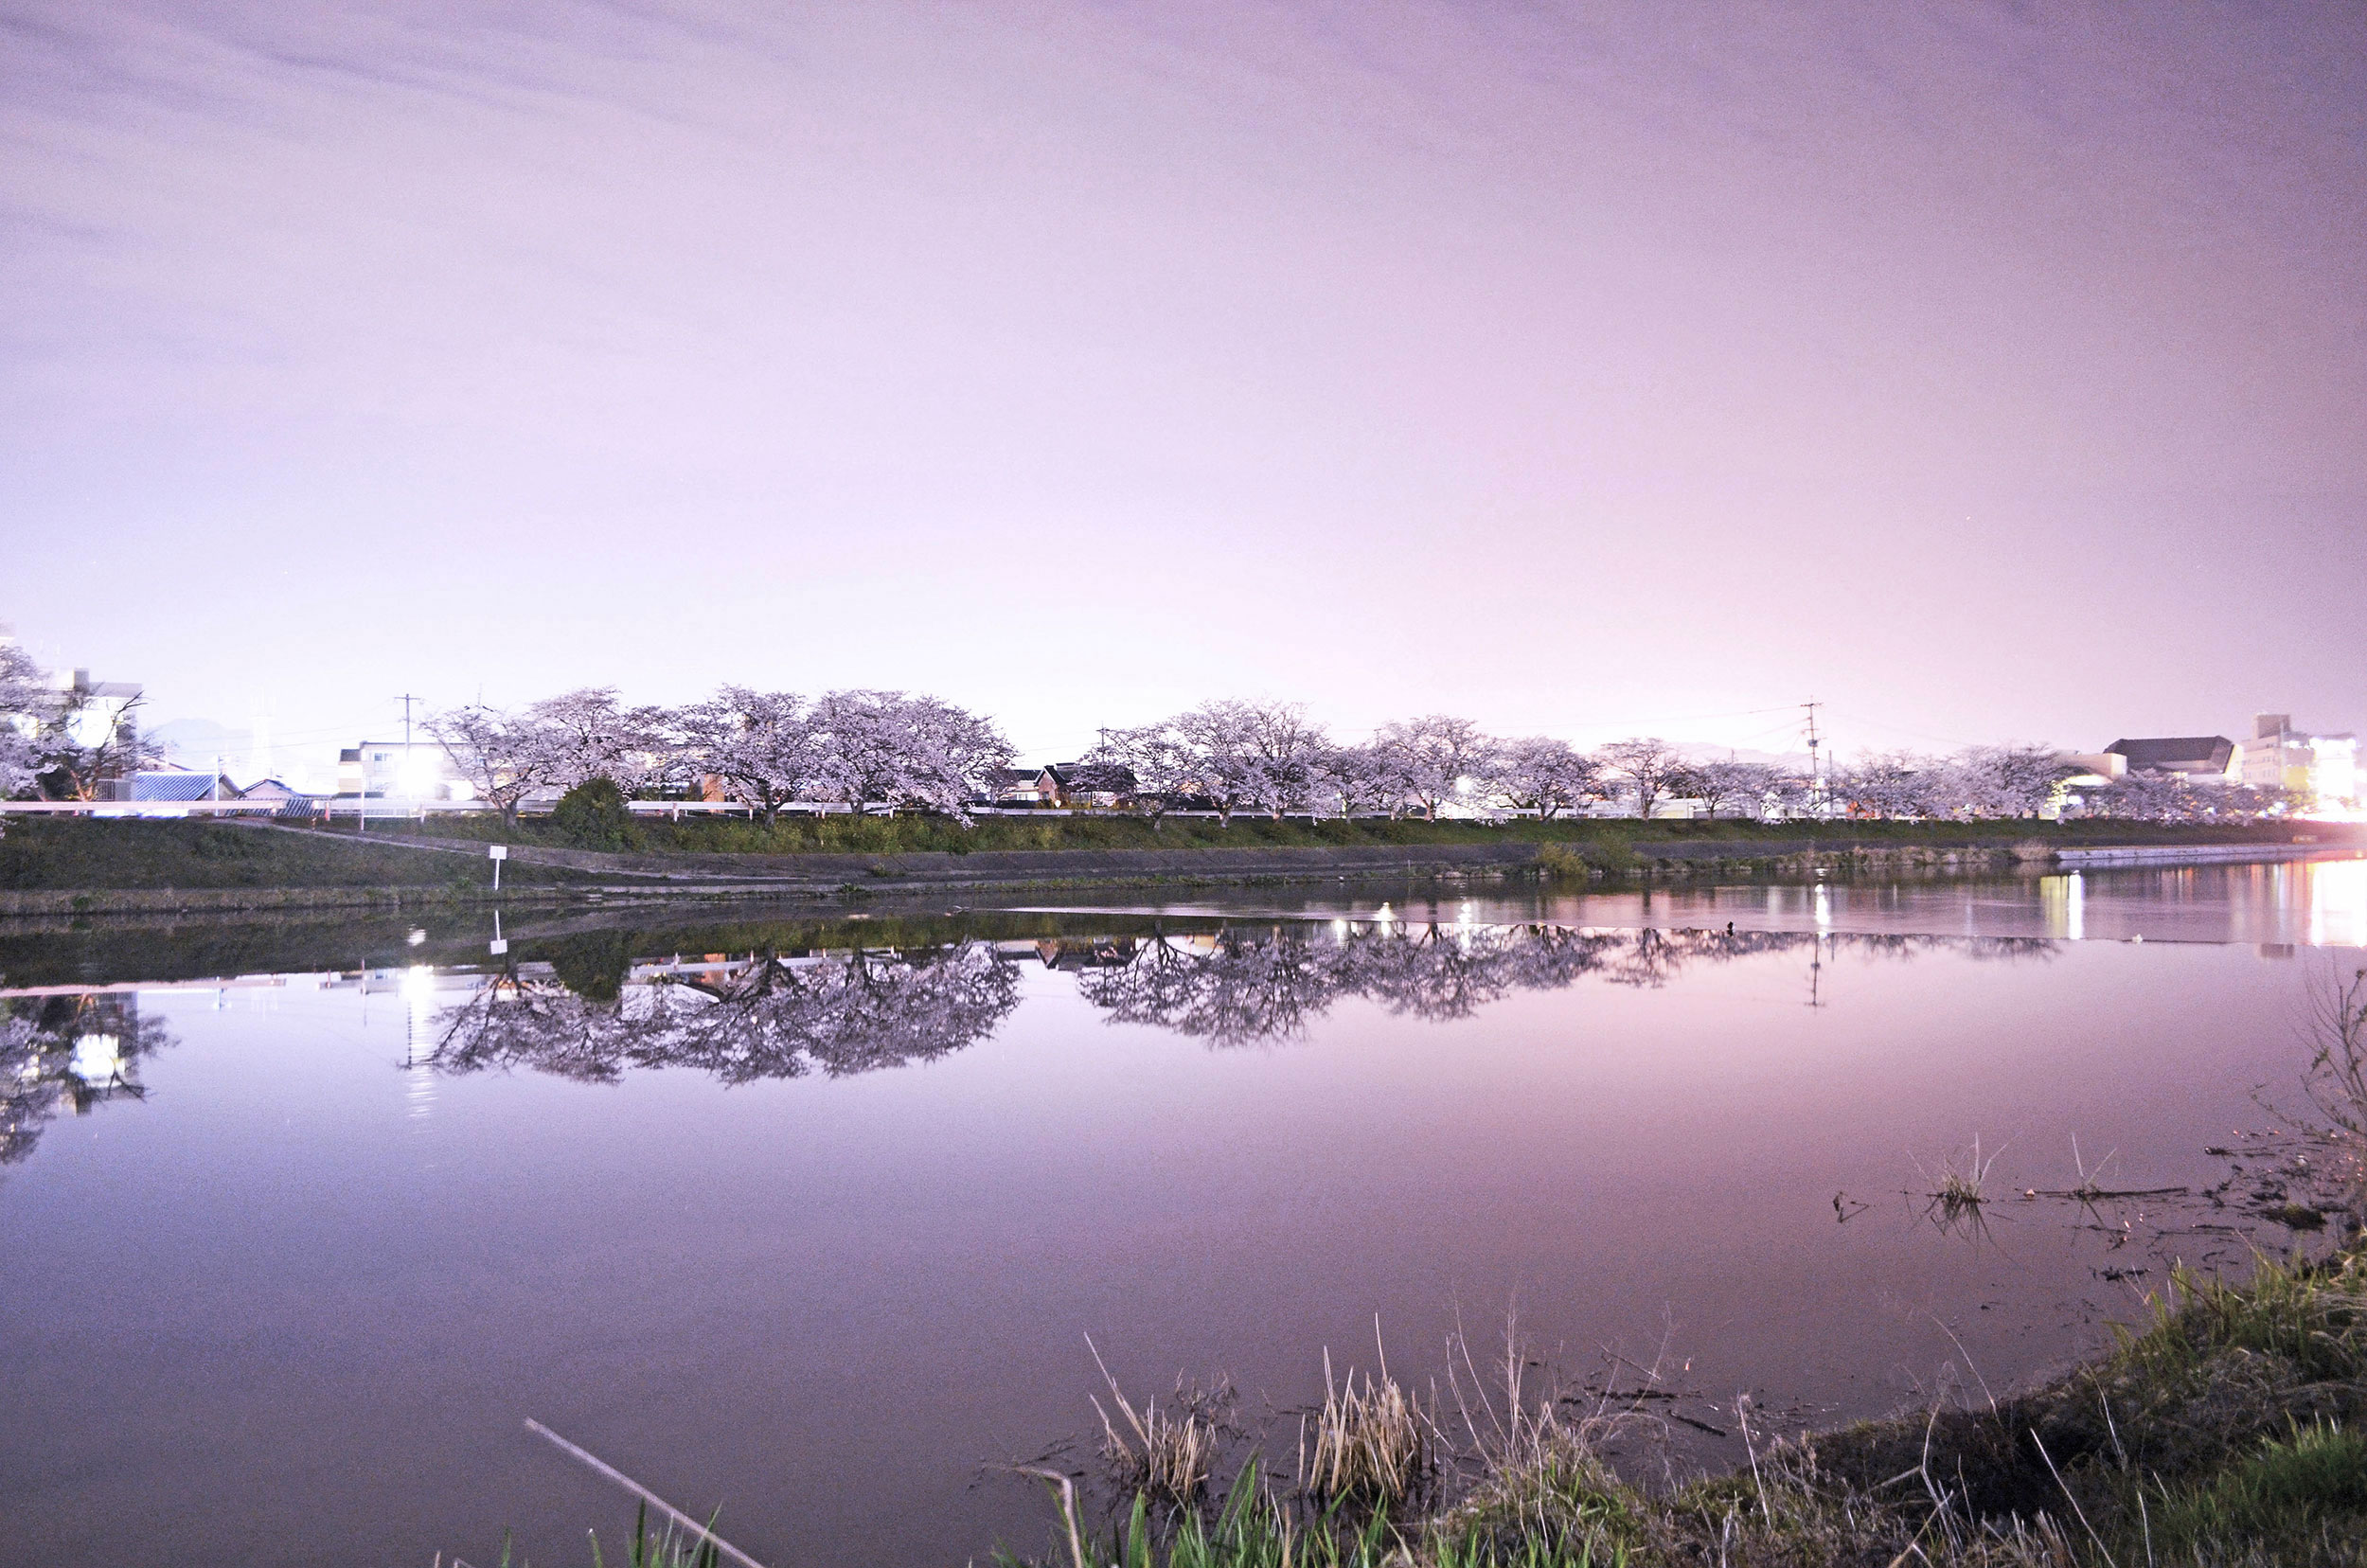 The Imagawa river at night